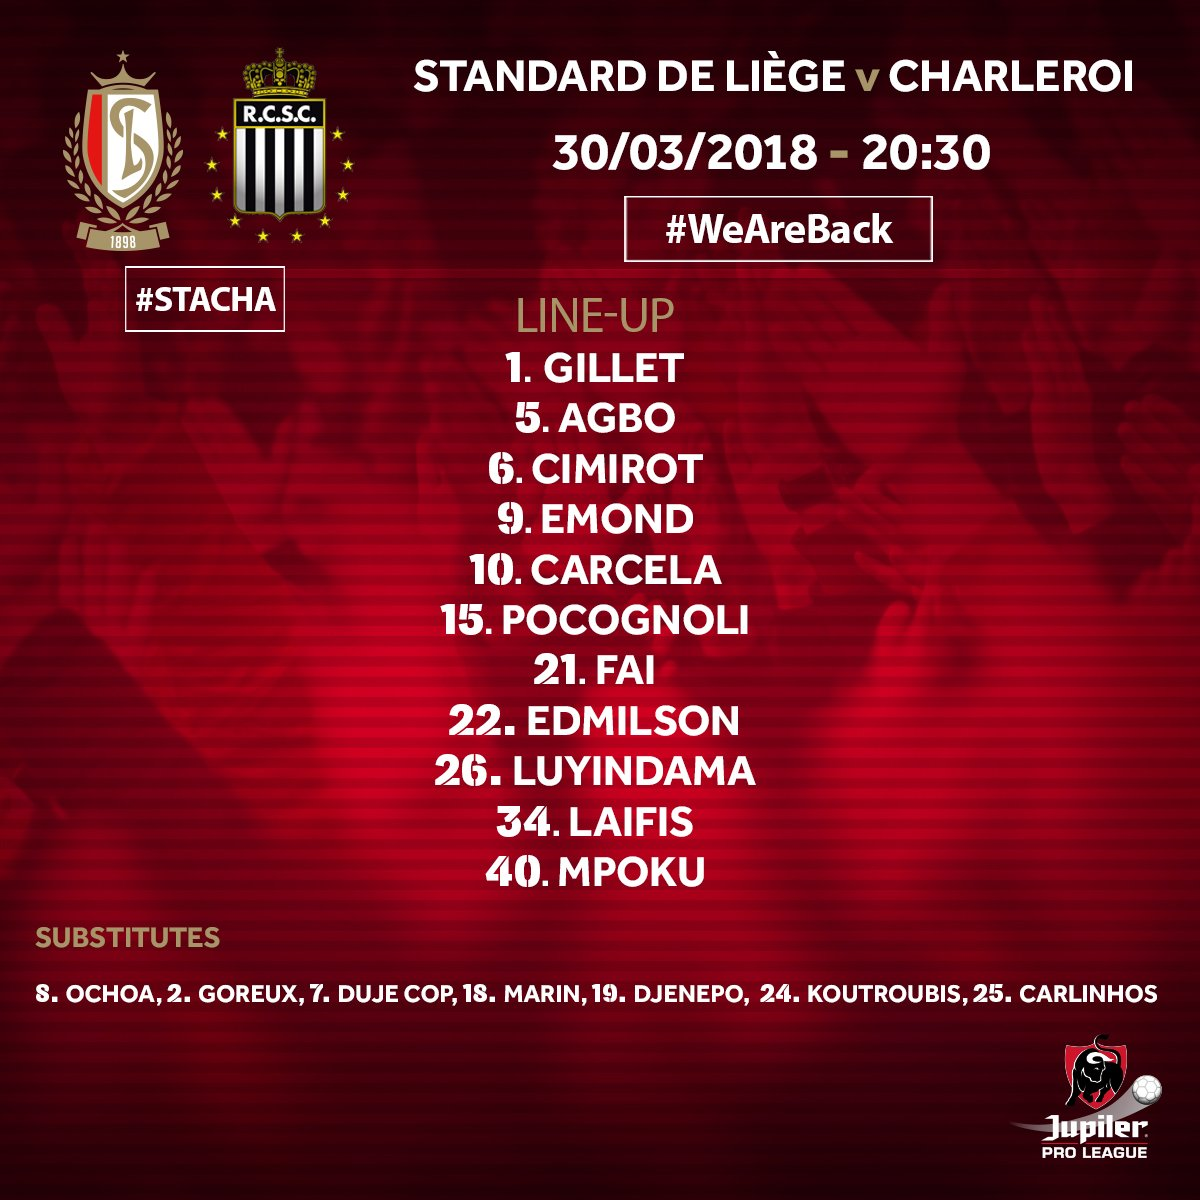 Agbo Stars As Standard Liege Edge Charleroi In Belgian Play-Offs Clash